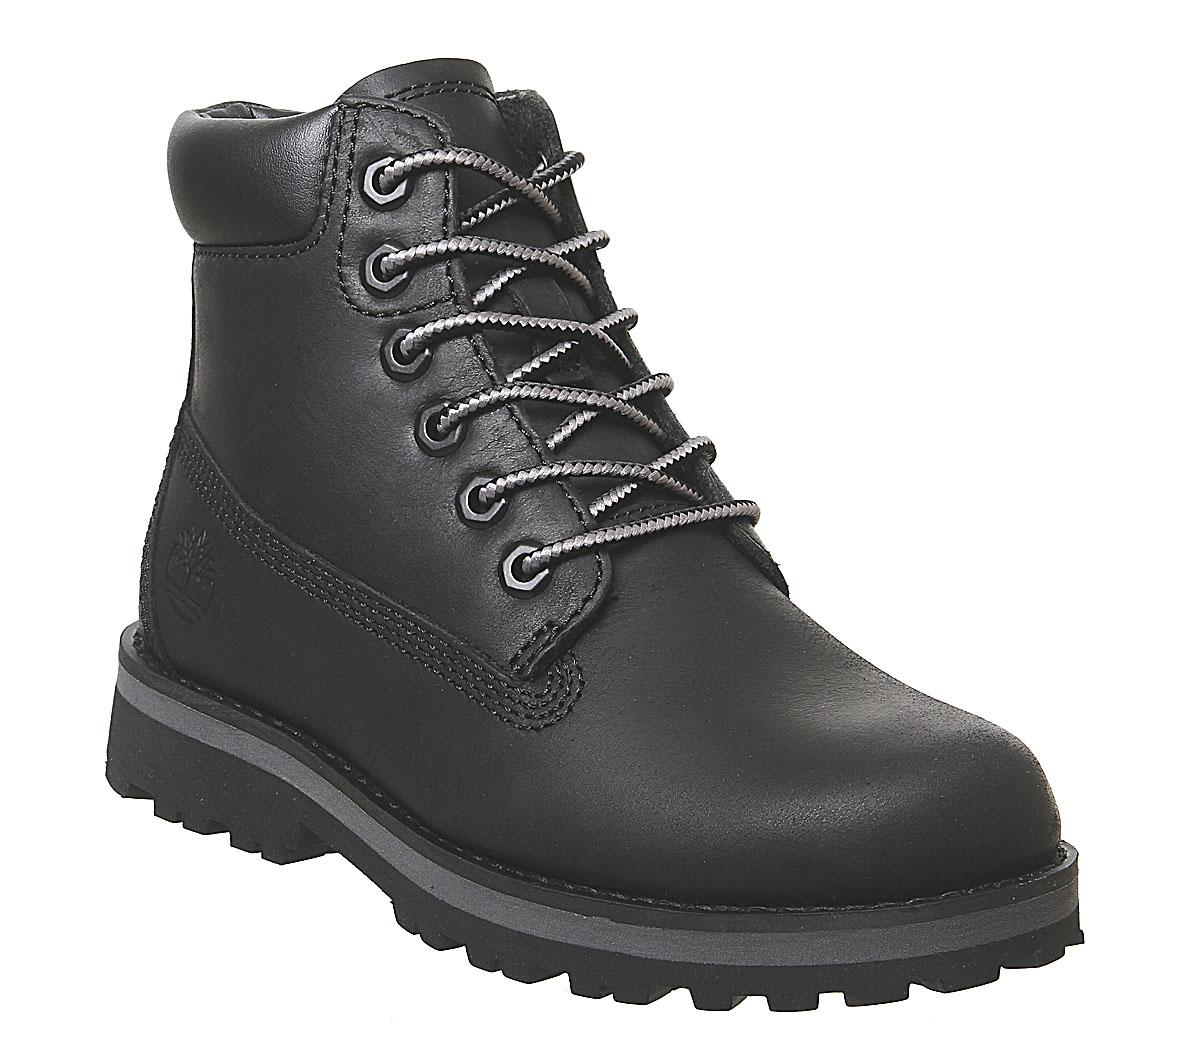 Courma 6 Inch Youth Boots